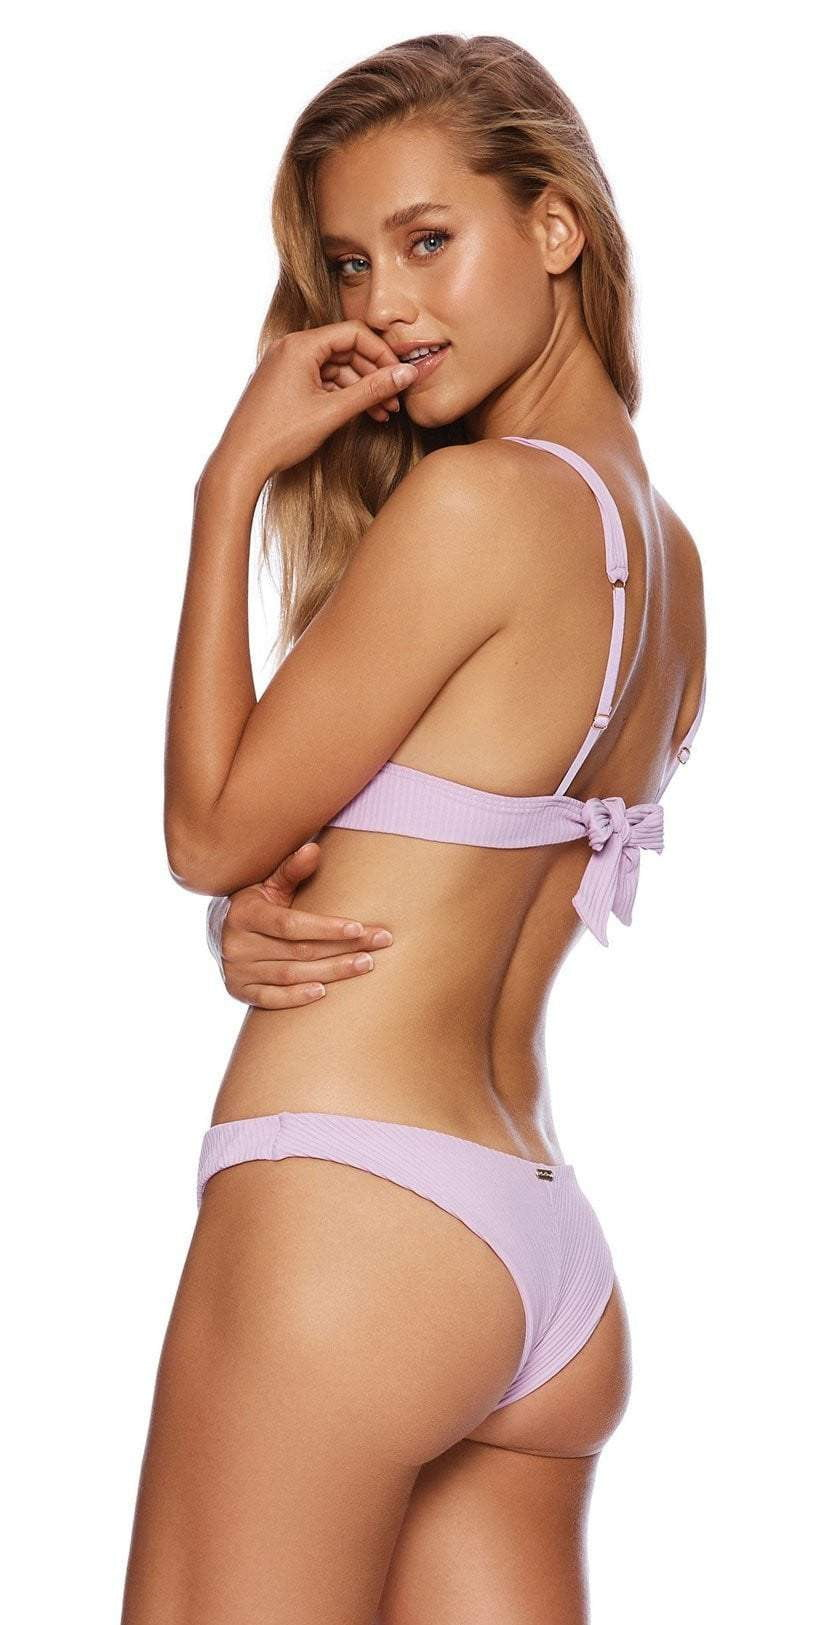 Beach Bunny Larson High Apex Bikini Top in Lavender B19112T4-LAV: